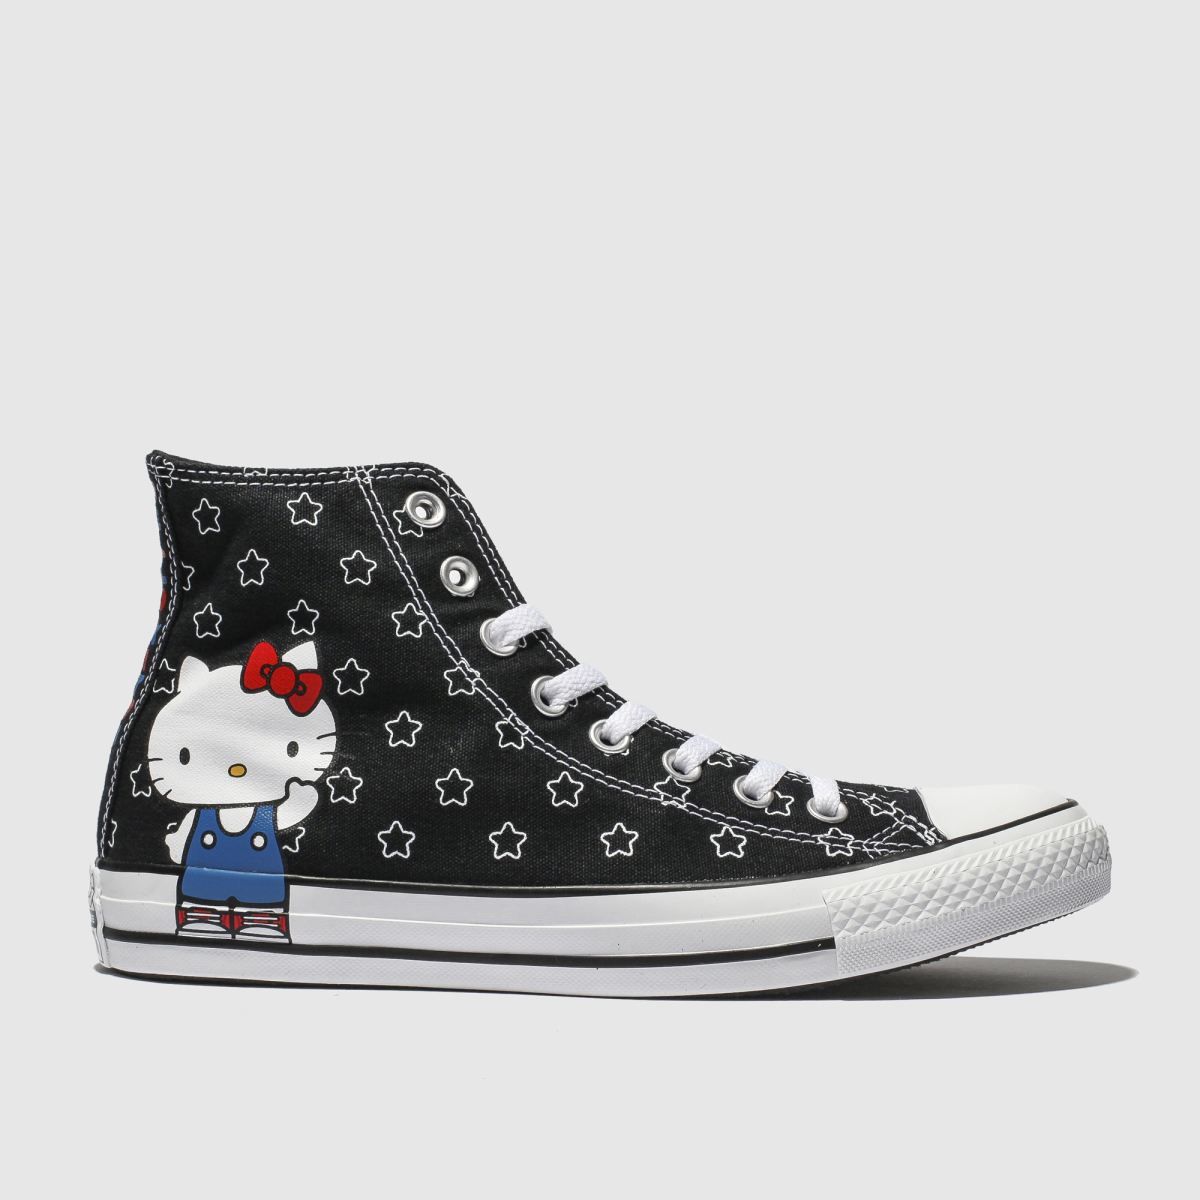 Converse Black & White All Star Hello Kitty Hi Trainers